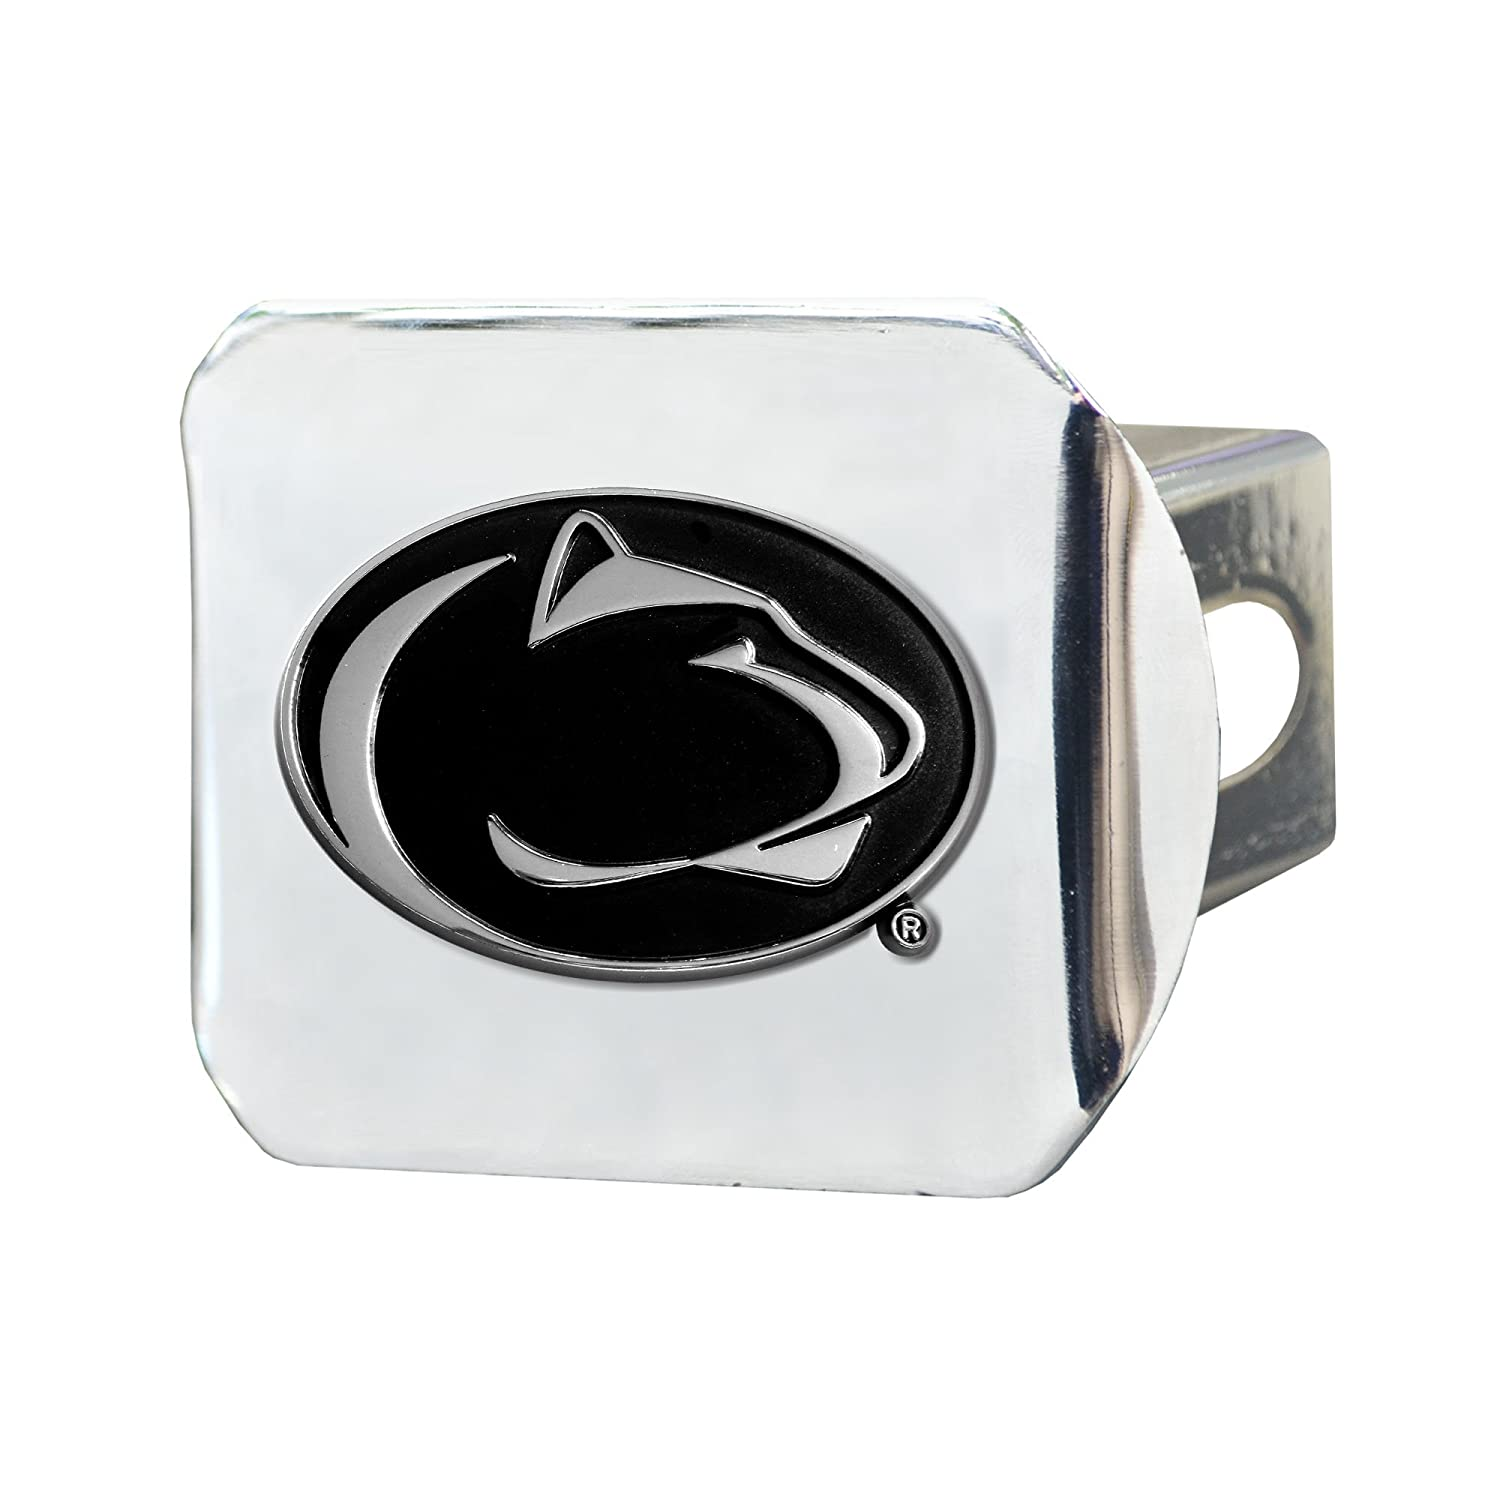 FANMATS 15088 NCAA Penn State Nittany Lions Chrome Hitch Cover